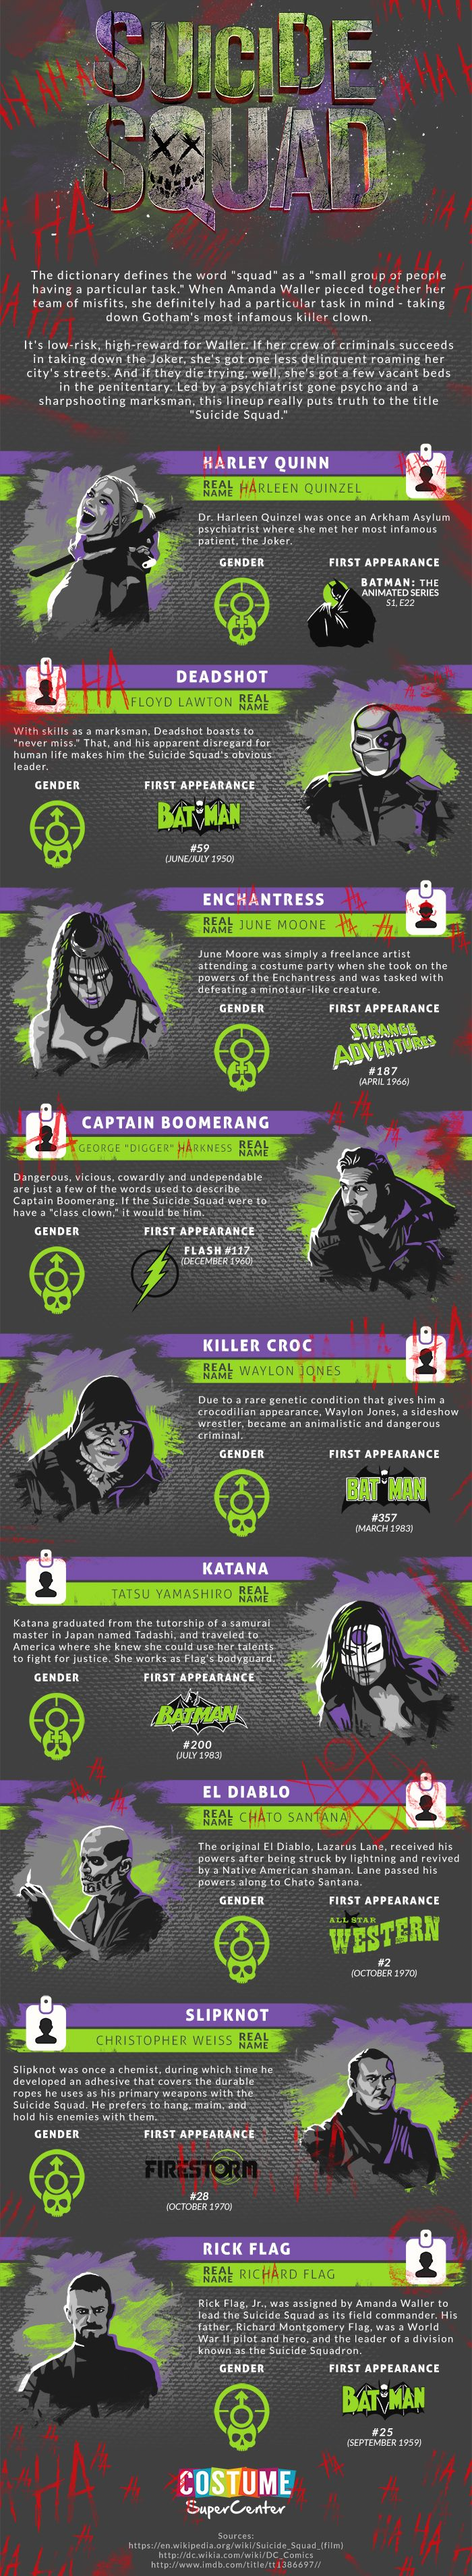 Meet the squad everyone is talking about with our Suicide Squad infographic!